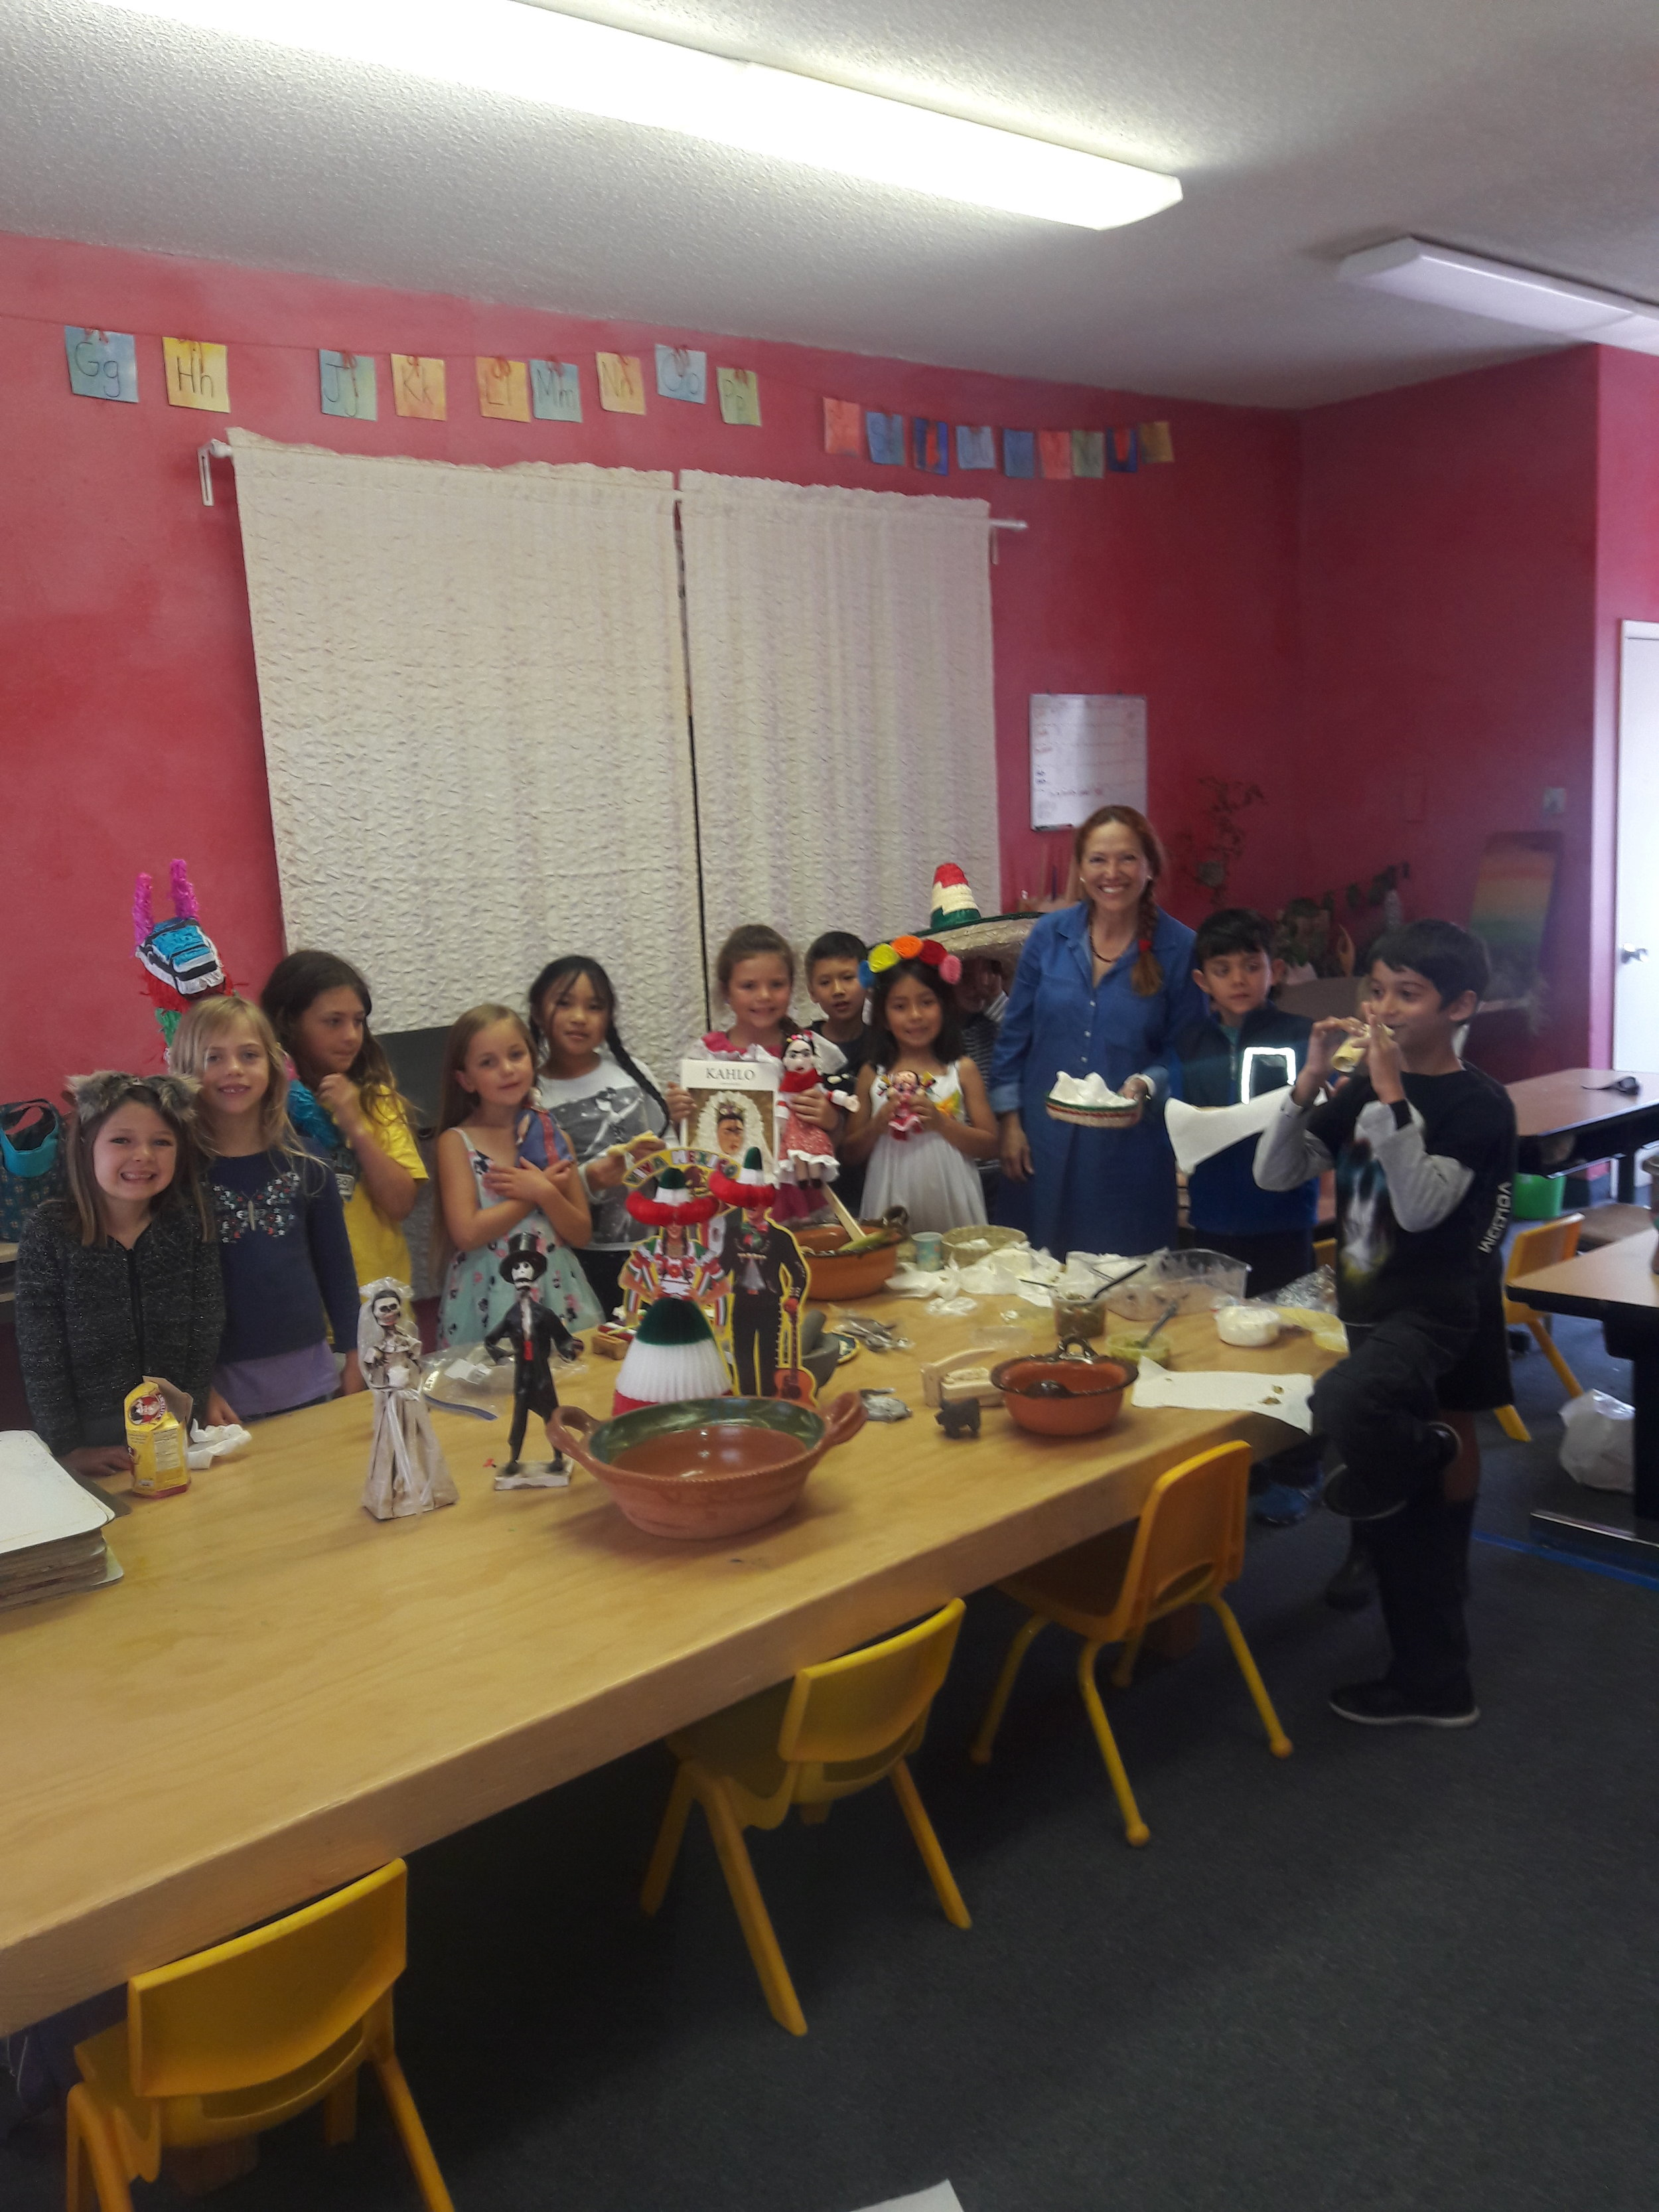 - Spanish as a World Language:1st-5th: Through games, cooking, songs, and verse, participants are introduced and exposed to cultural and linguistic aspects of the Spanish language.